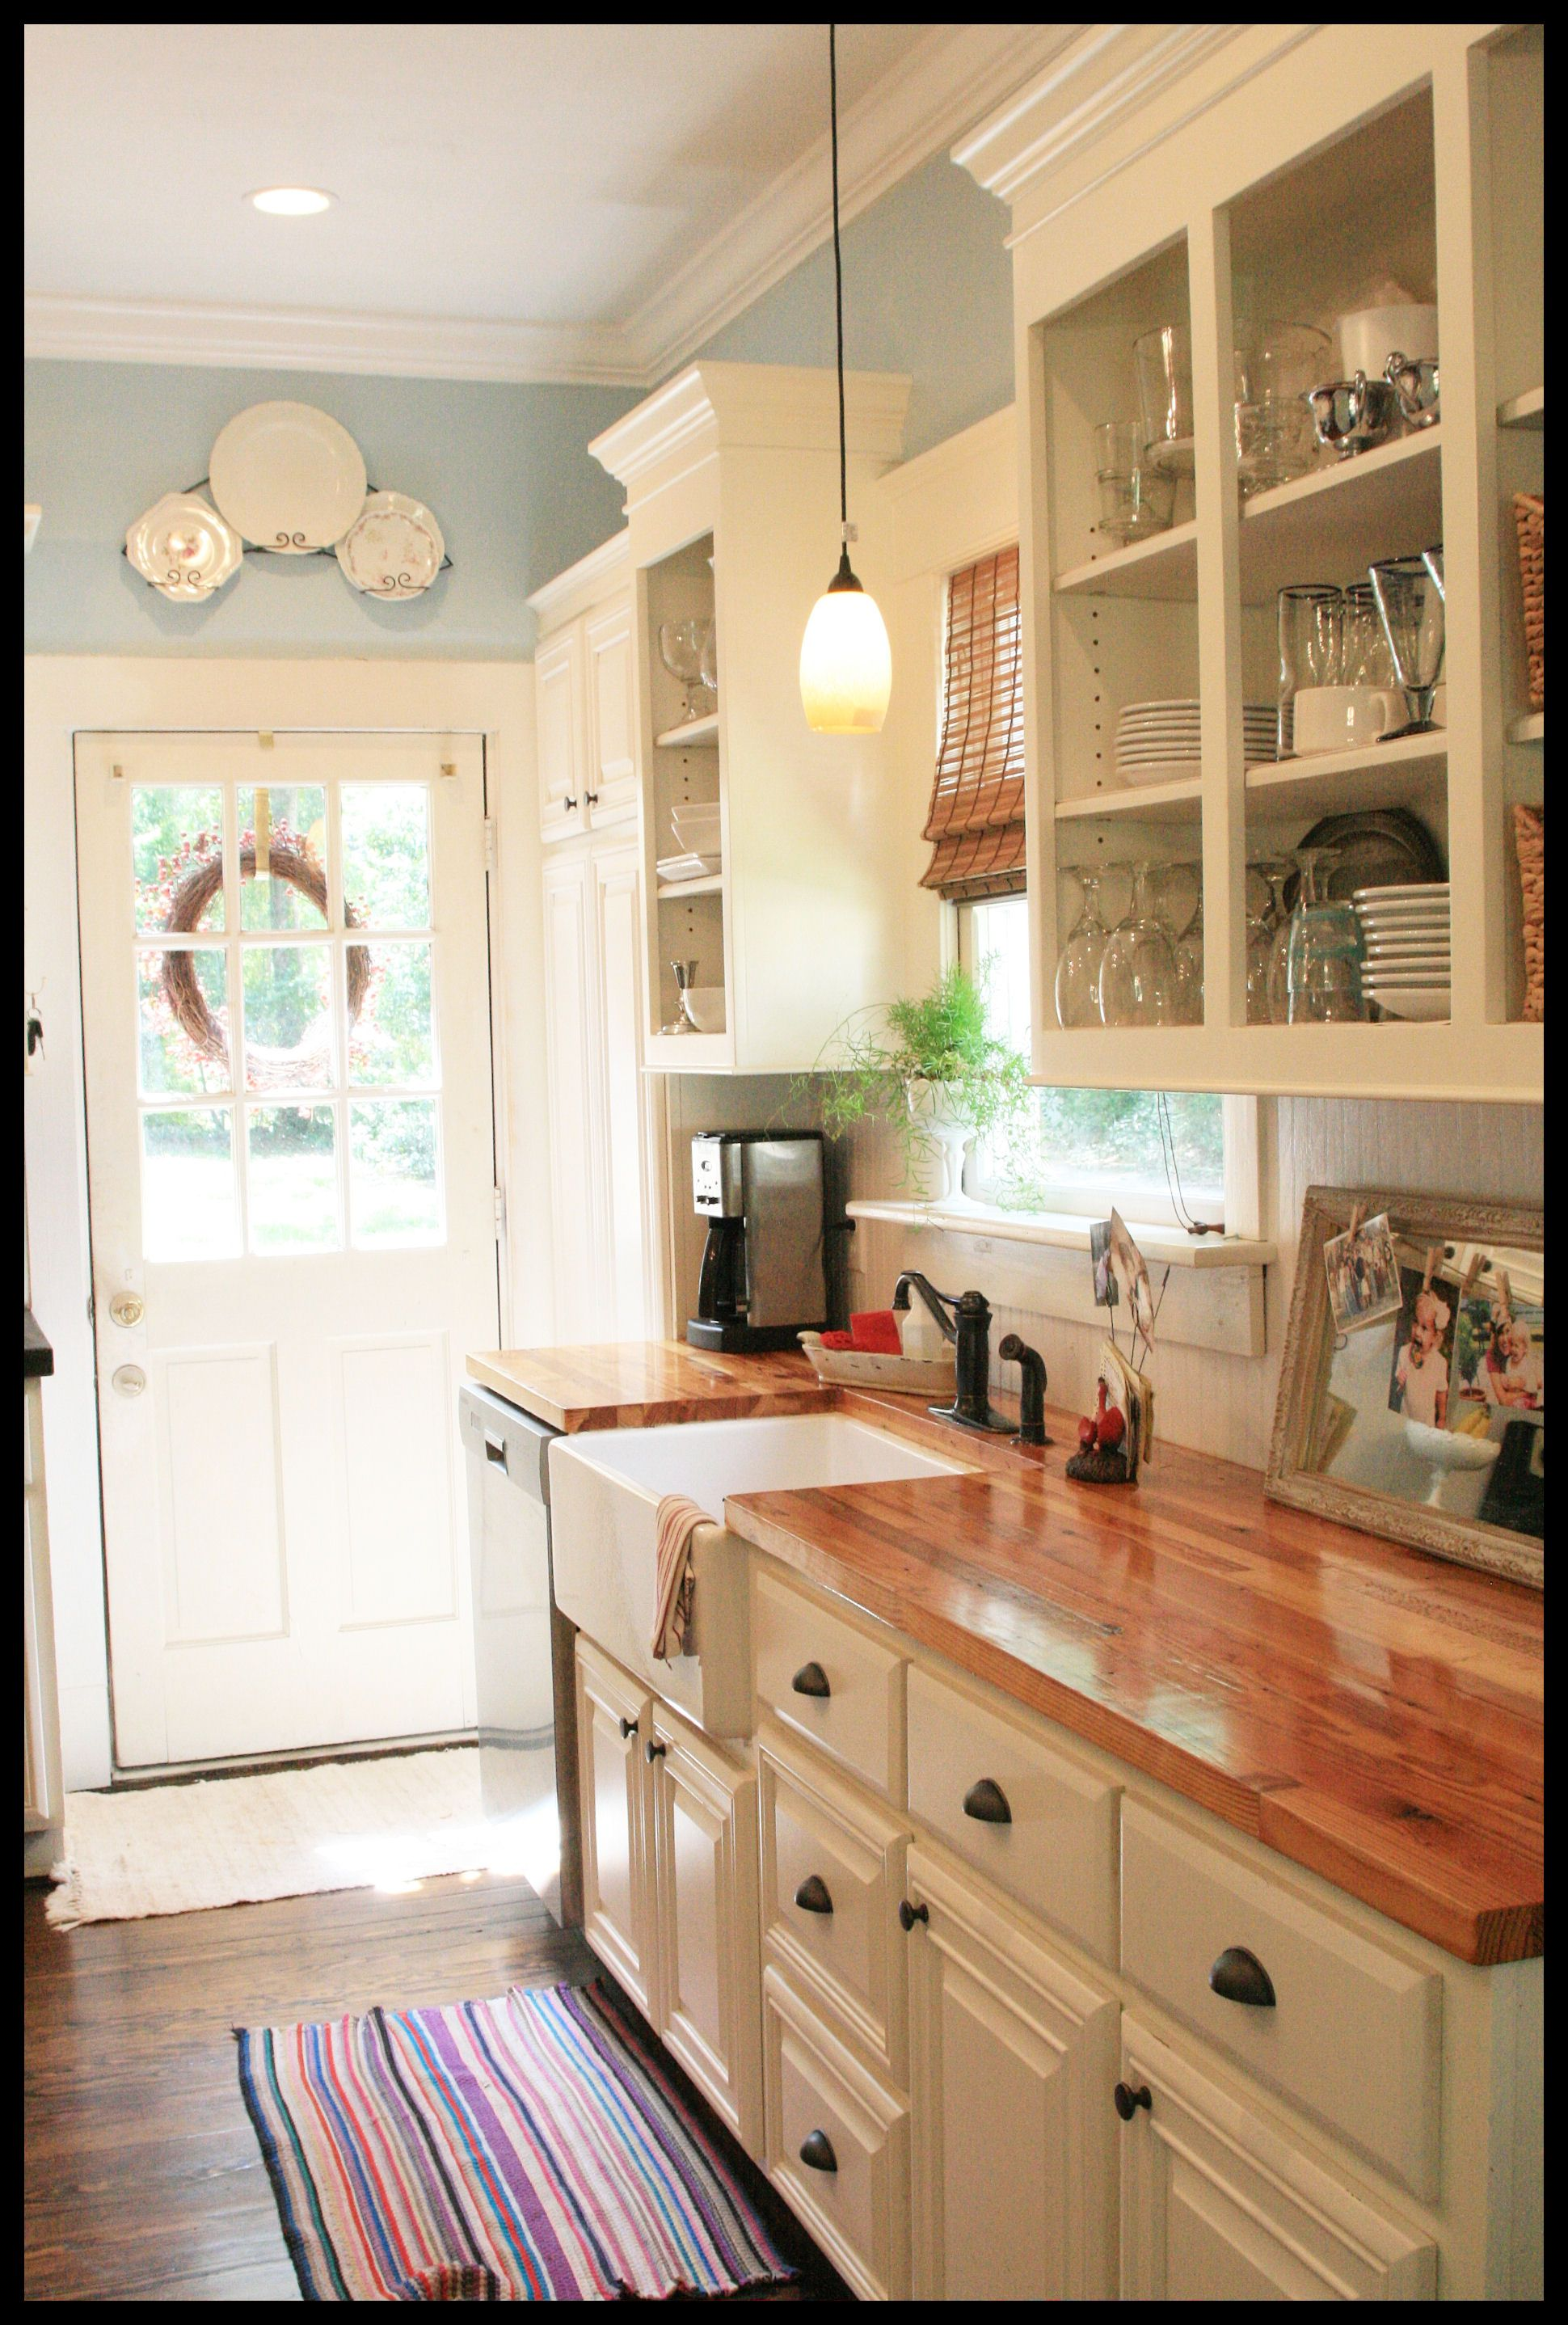 White Cabinets Butcher Block Countertops Farmhouse Sink And Pretty Blue Walls I Love This Maybe Not So Much The But Cabinetry